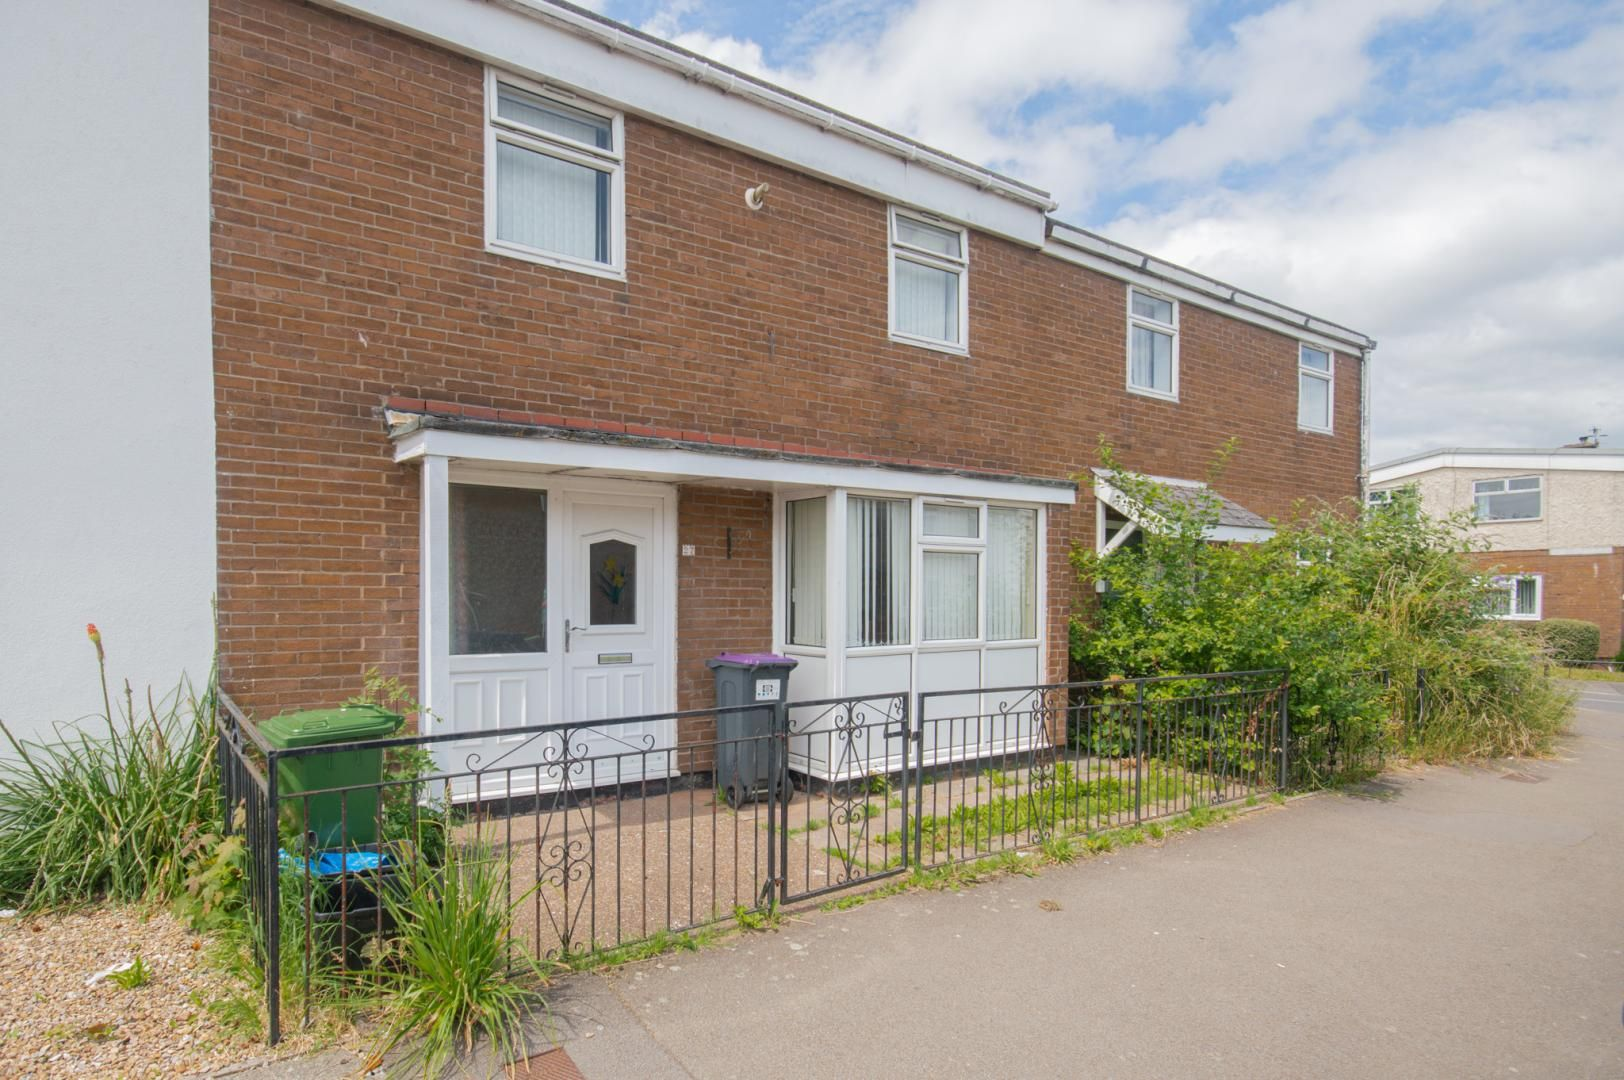 2 bed house to rent in Porthmawr Road, NP44